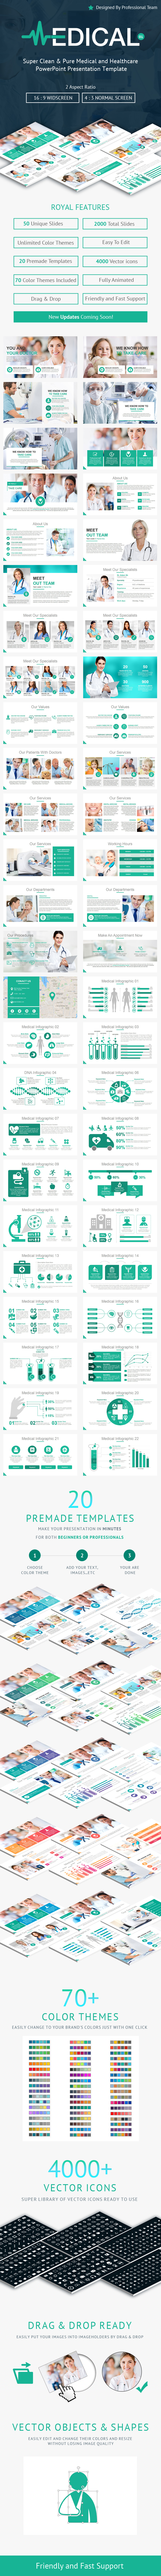 Medical and healthcare powerpoint presentation template by rojdark medical and healthcare powerpoint presentation template creative powerpoint templates toneelgroepblik Gallery